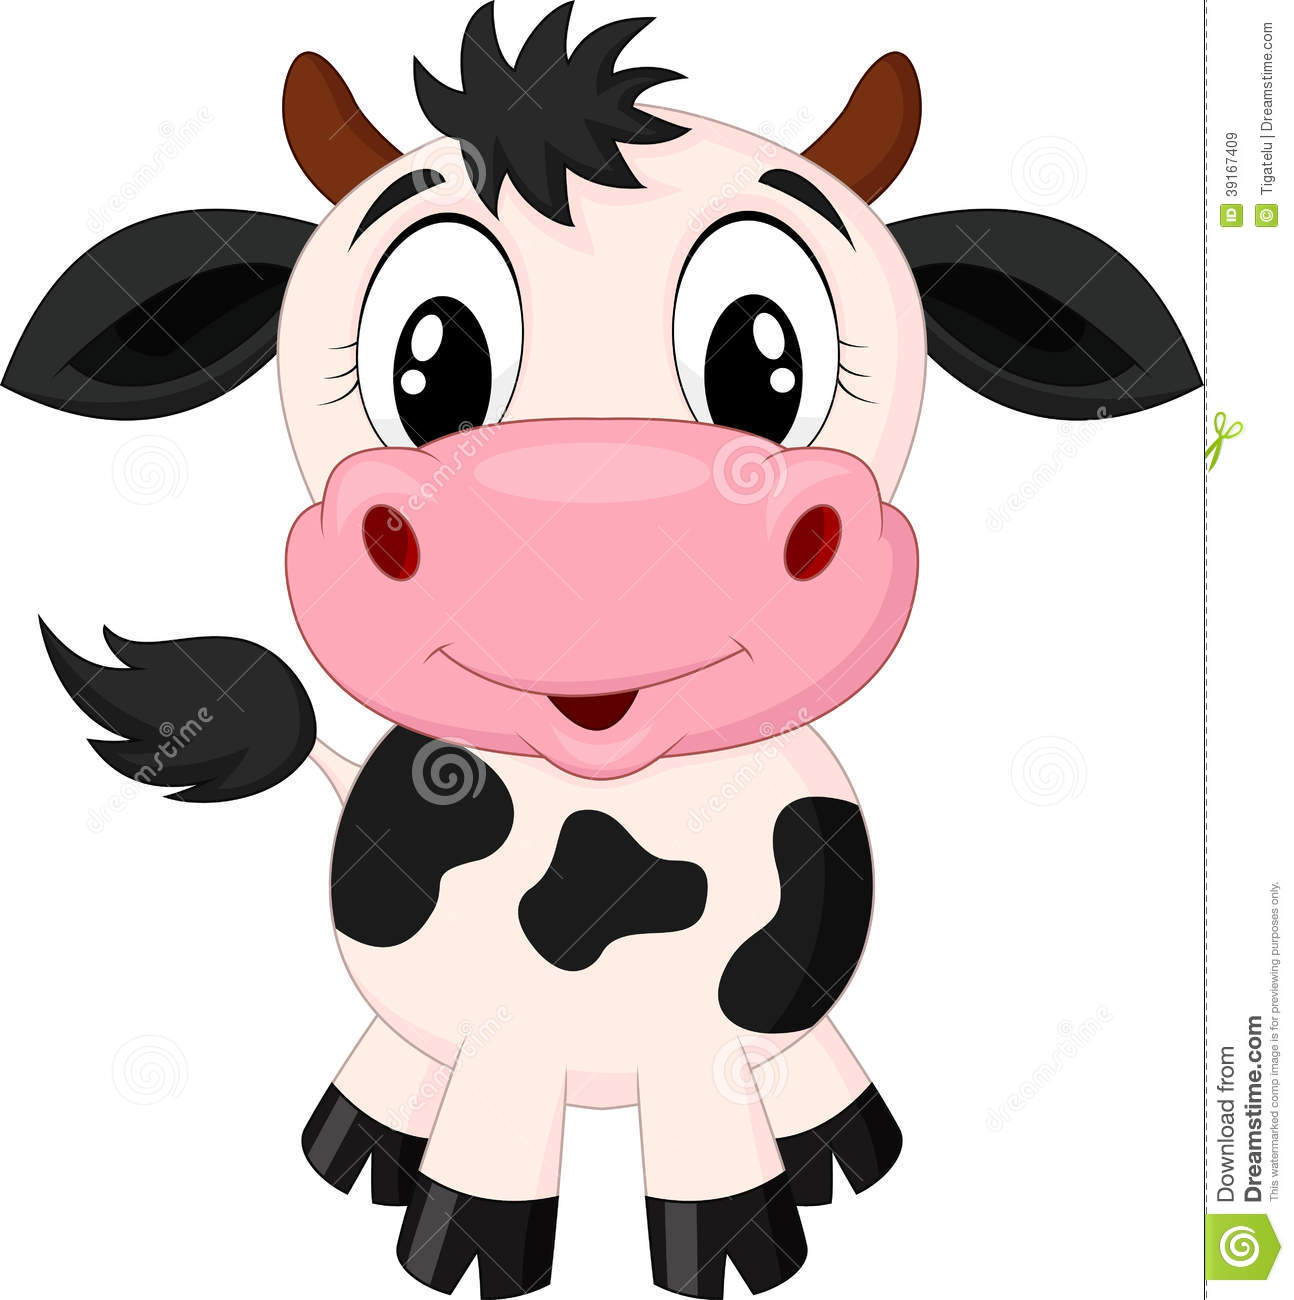 Cute cow cartoon vector 2008139 - by tigatelu on VectorStock® - Baby Farm Animals PNG HD